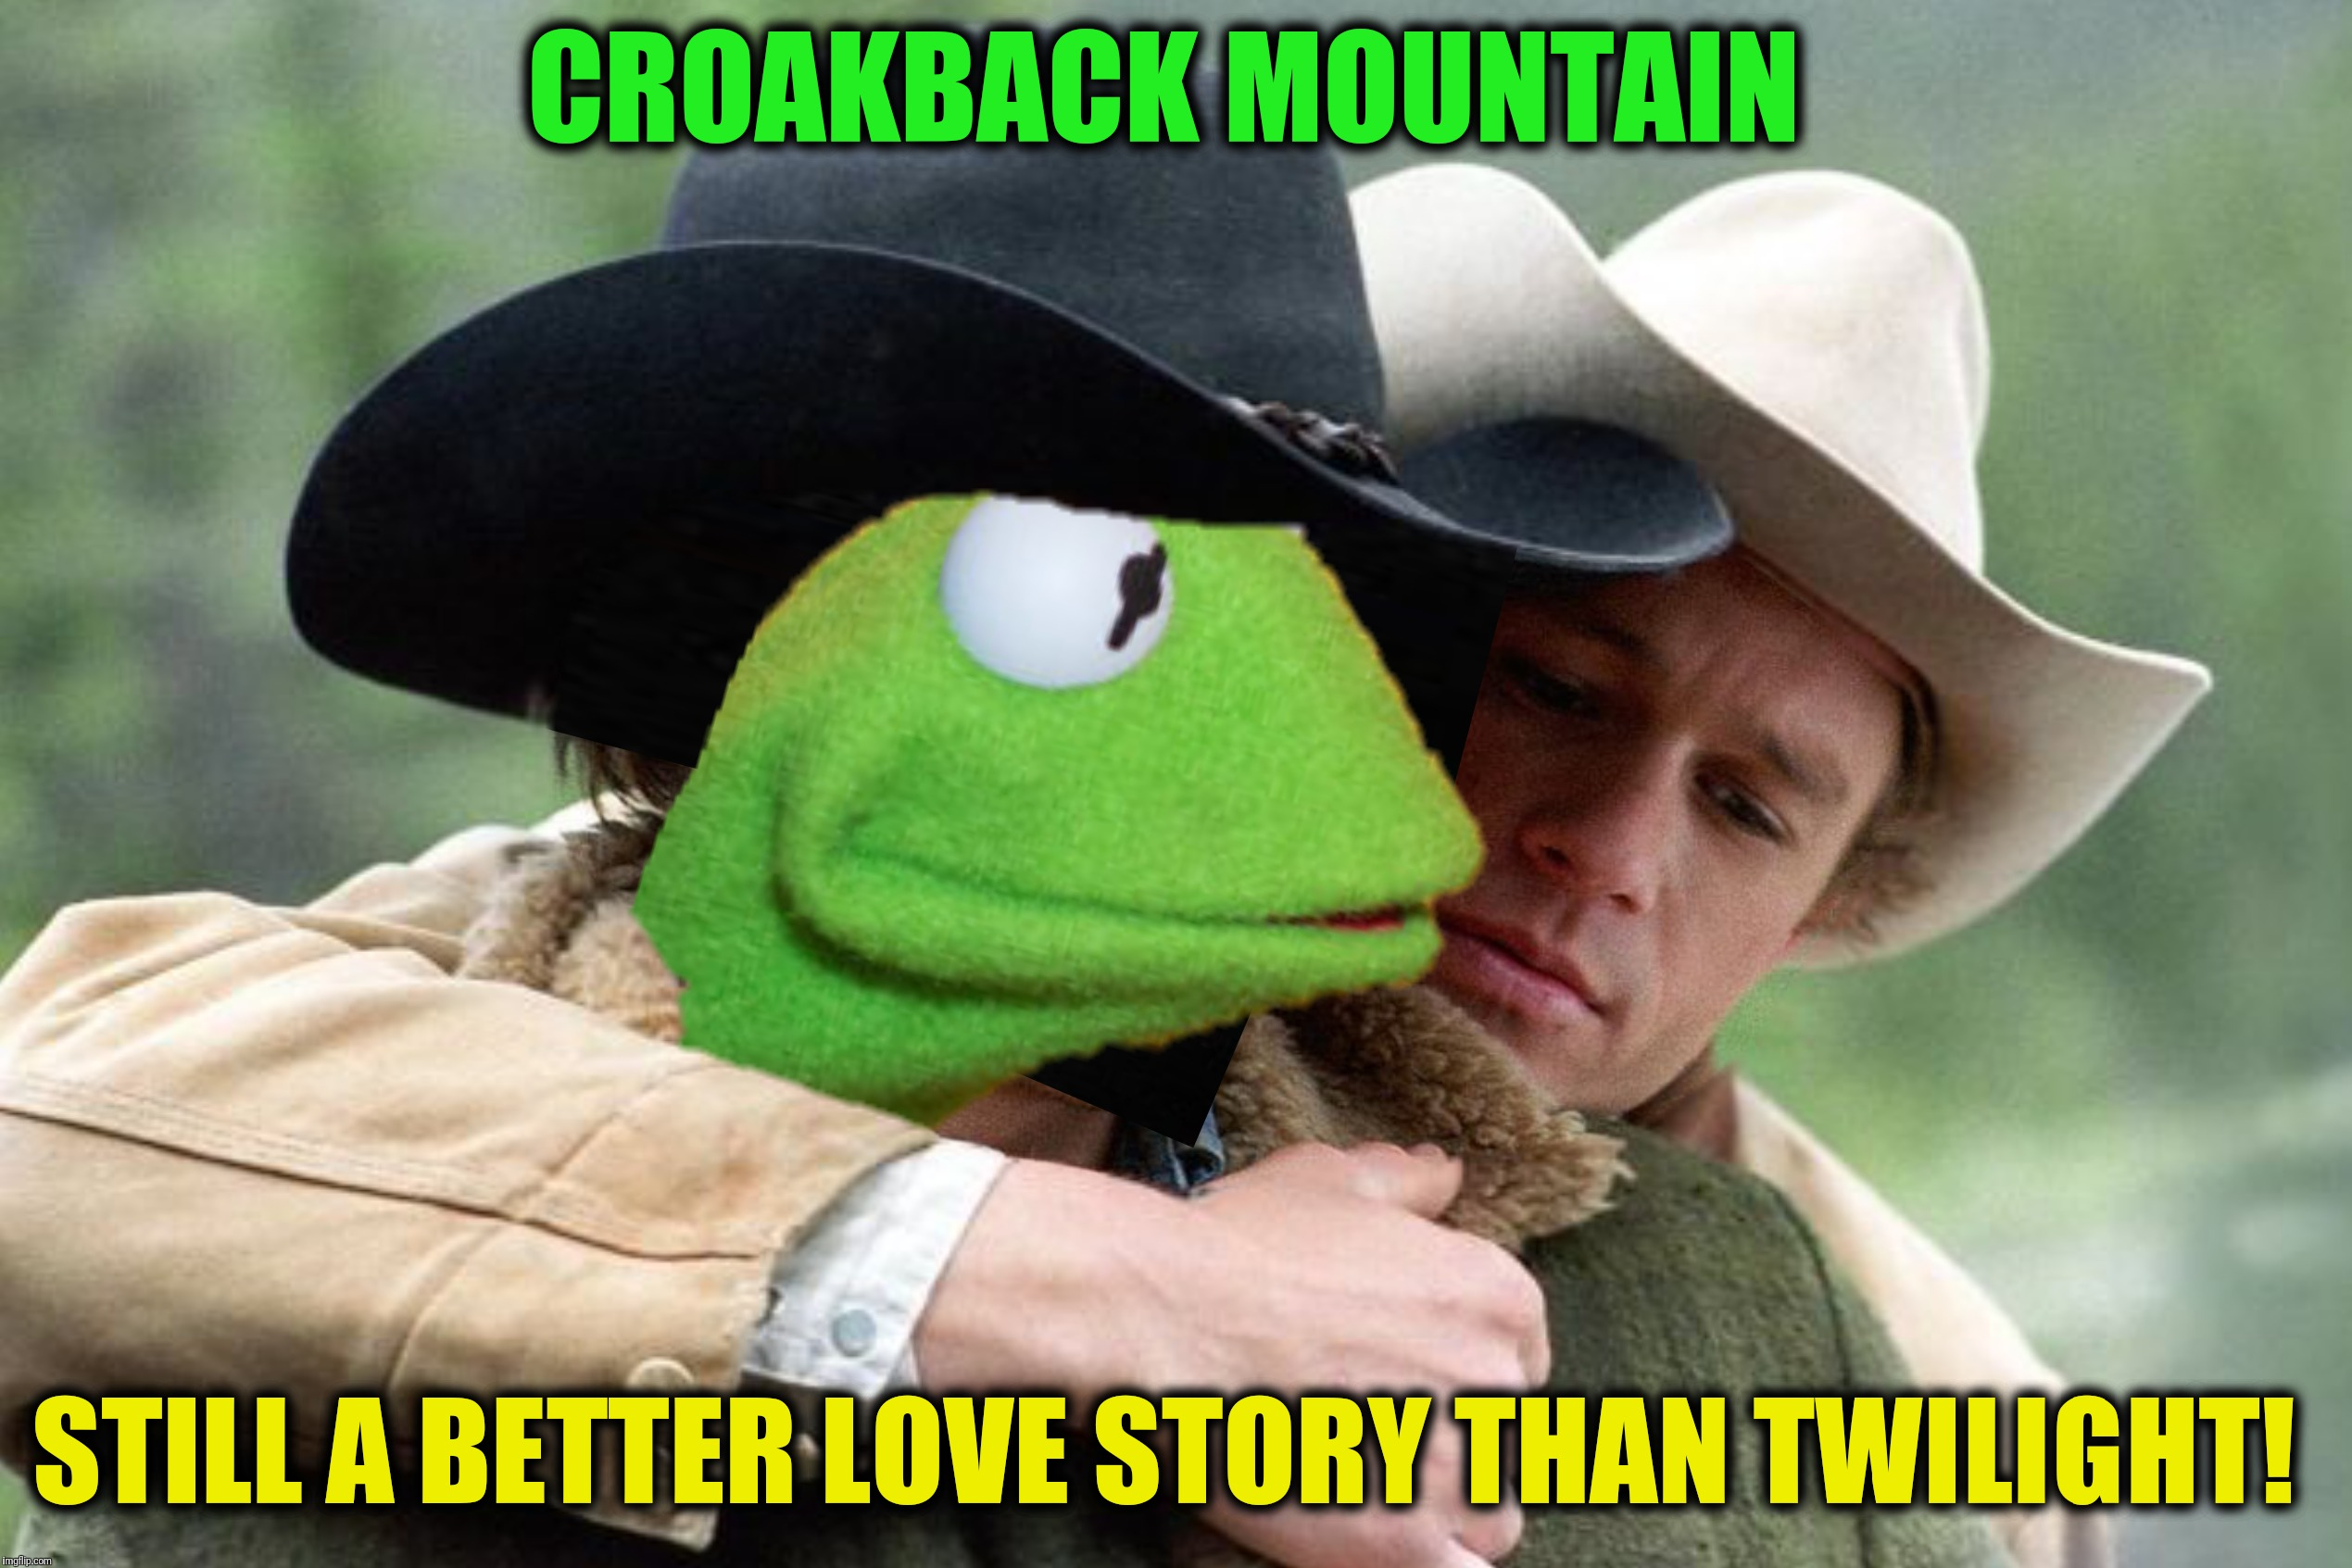 A man, a frog and a mountain.  Frog Week June 4-10, a JBmemegeek & giveuahint event  | CROAKBACK MOUNTAIN STILL A BETTER LOVE STORY THAN TWILIGHT! | image tagged in frog week,evil kermit,brokeback mountain,croakback mountain | made w/ Imgflip meme maker